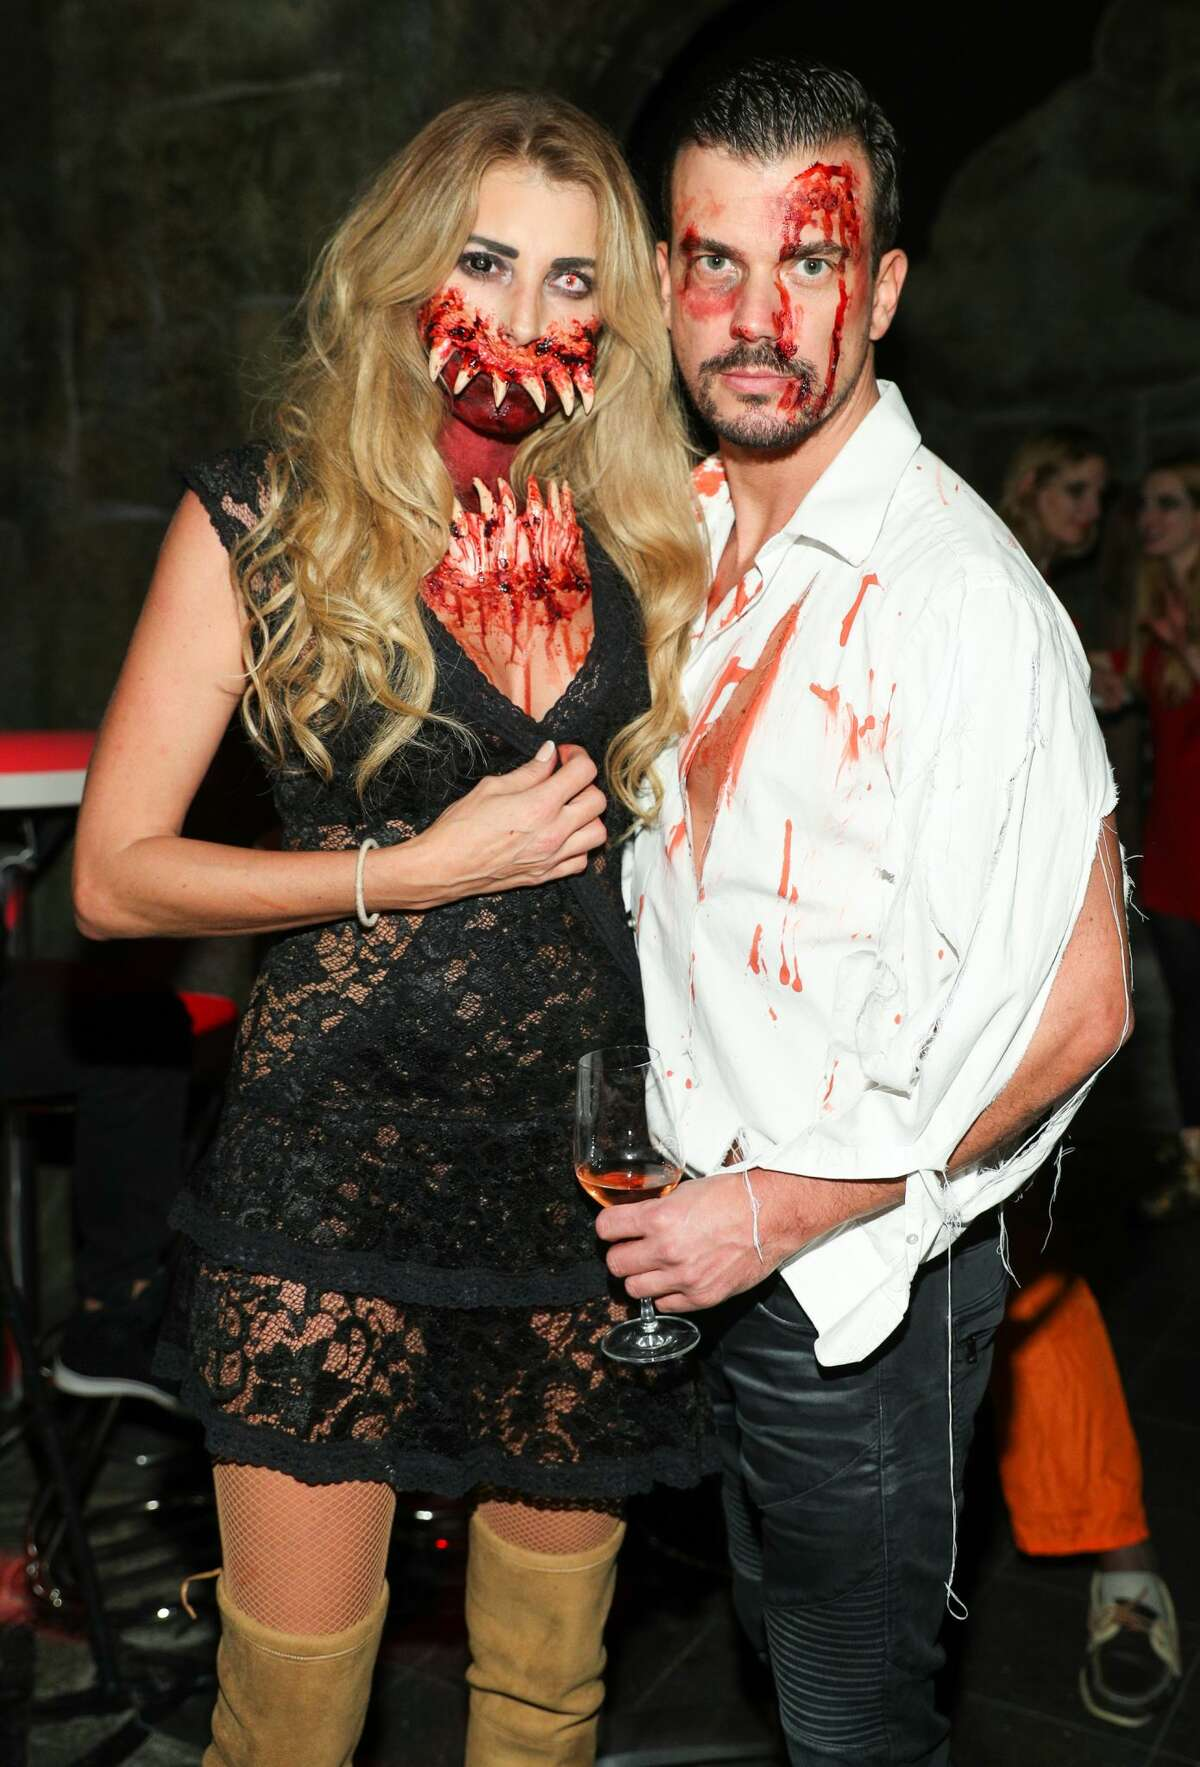 Giulia Siegel and Ludwig Heer attend the Halloween party hosted by Natascha Ochsenknecht at Berlin Dungeon on October 23, 2017 in Berlin, Germany.